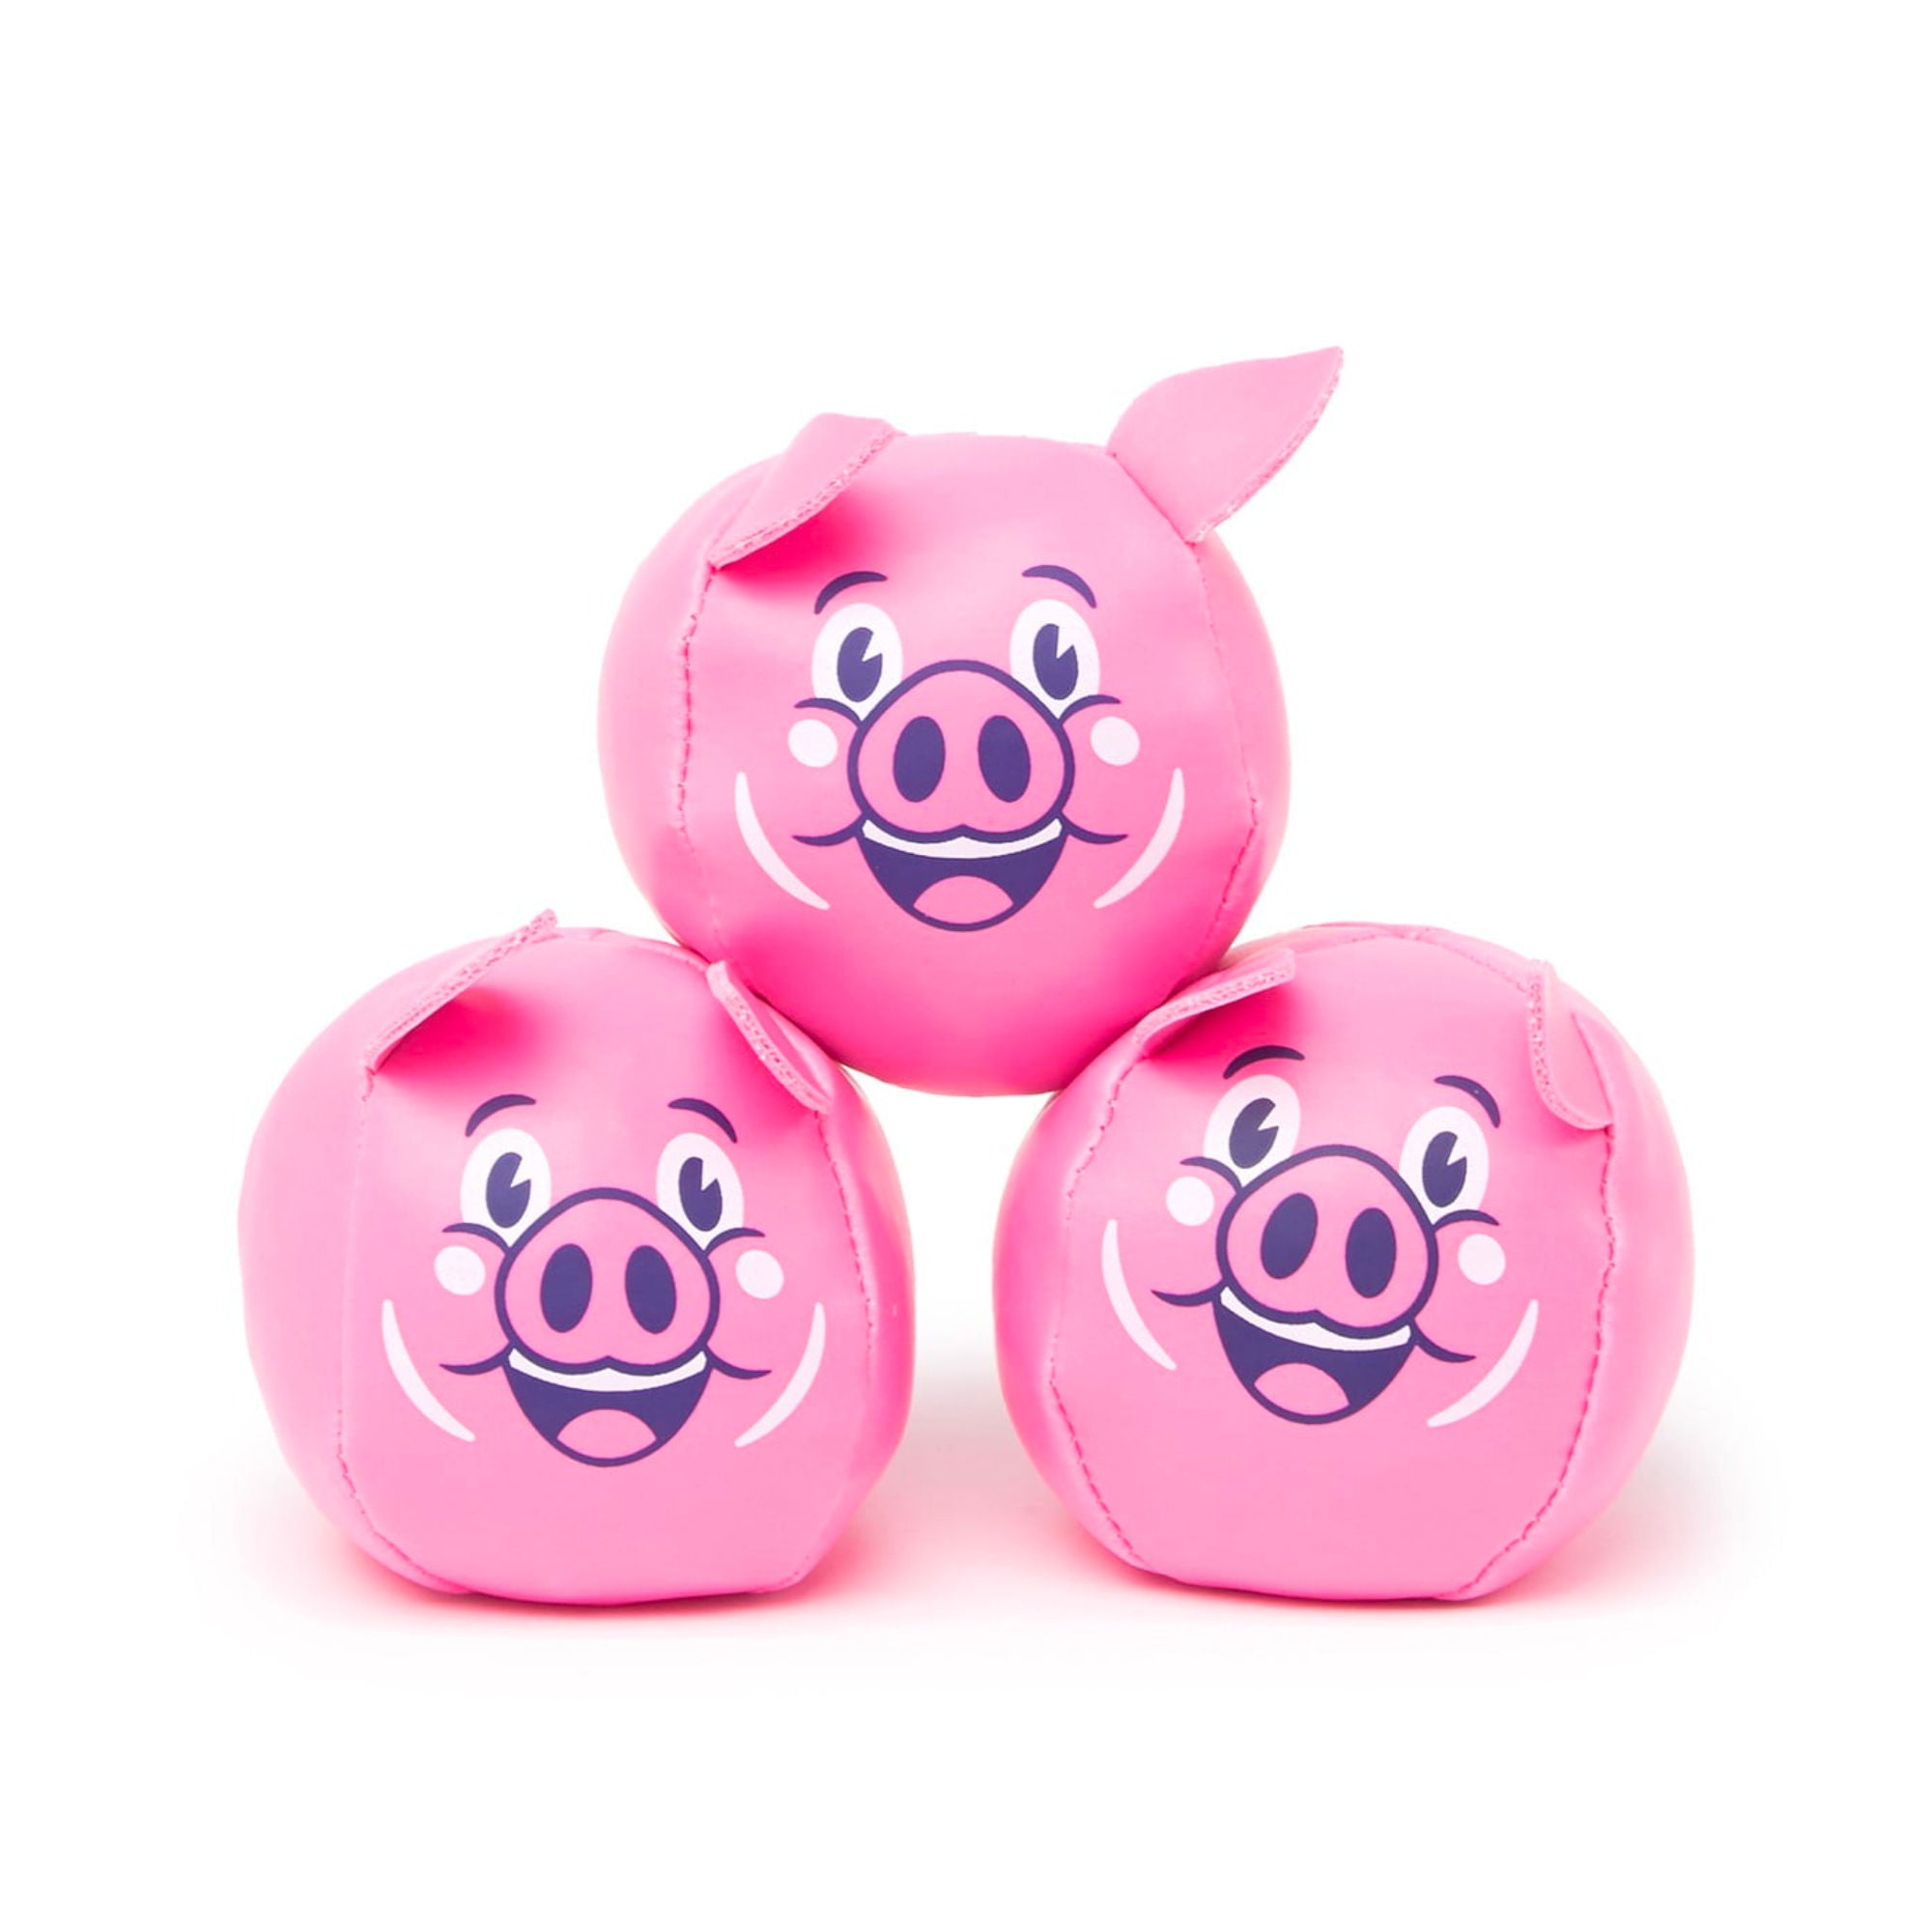 Ridley's Pigs Can Fly! Novelty Juggling Balls Set